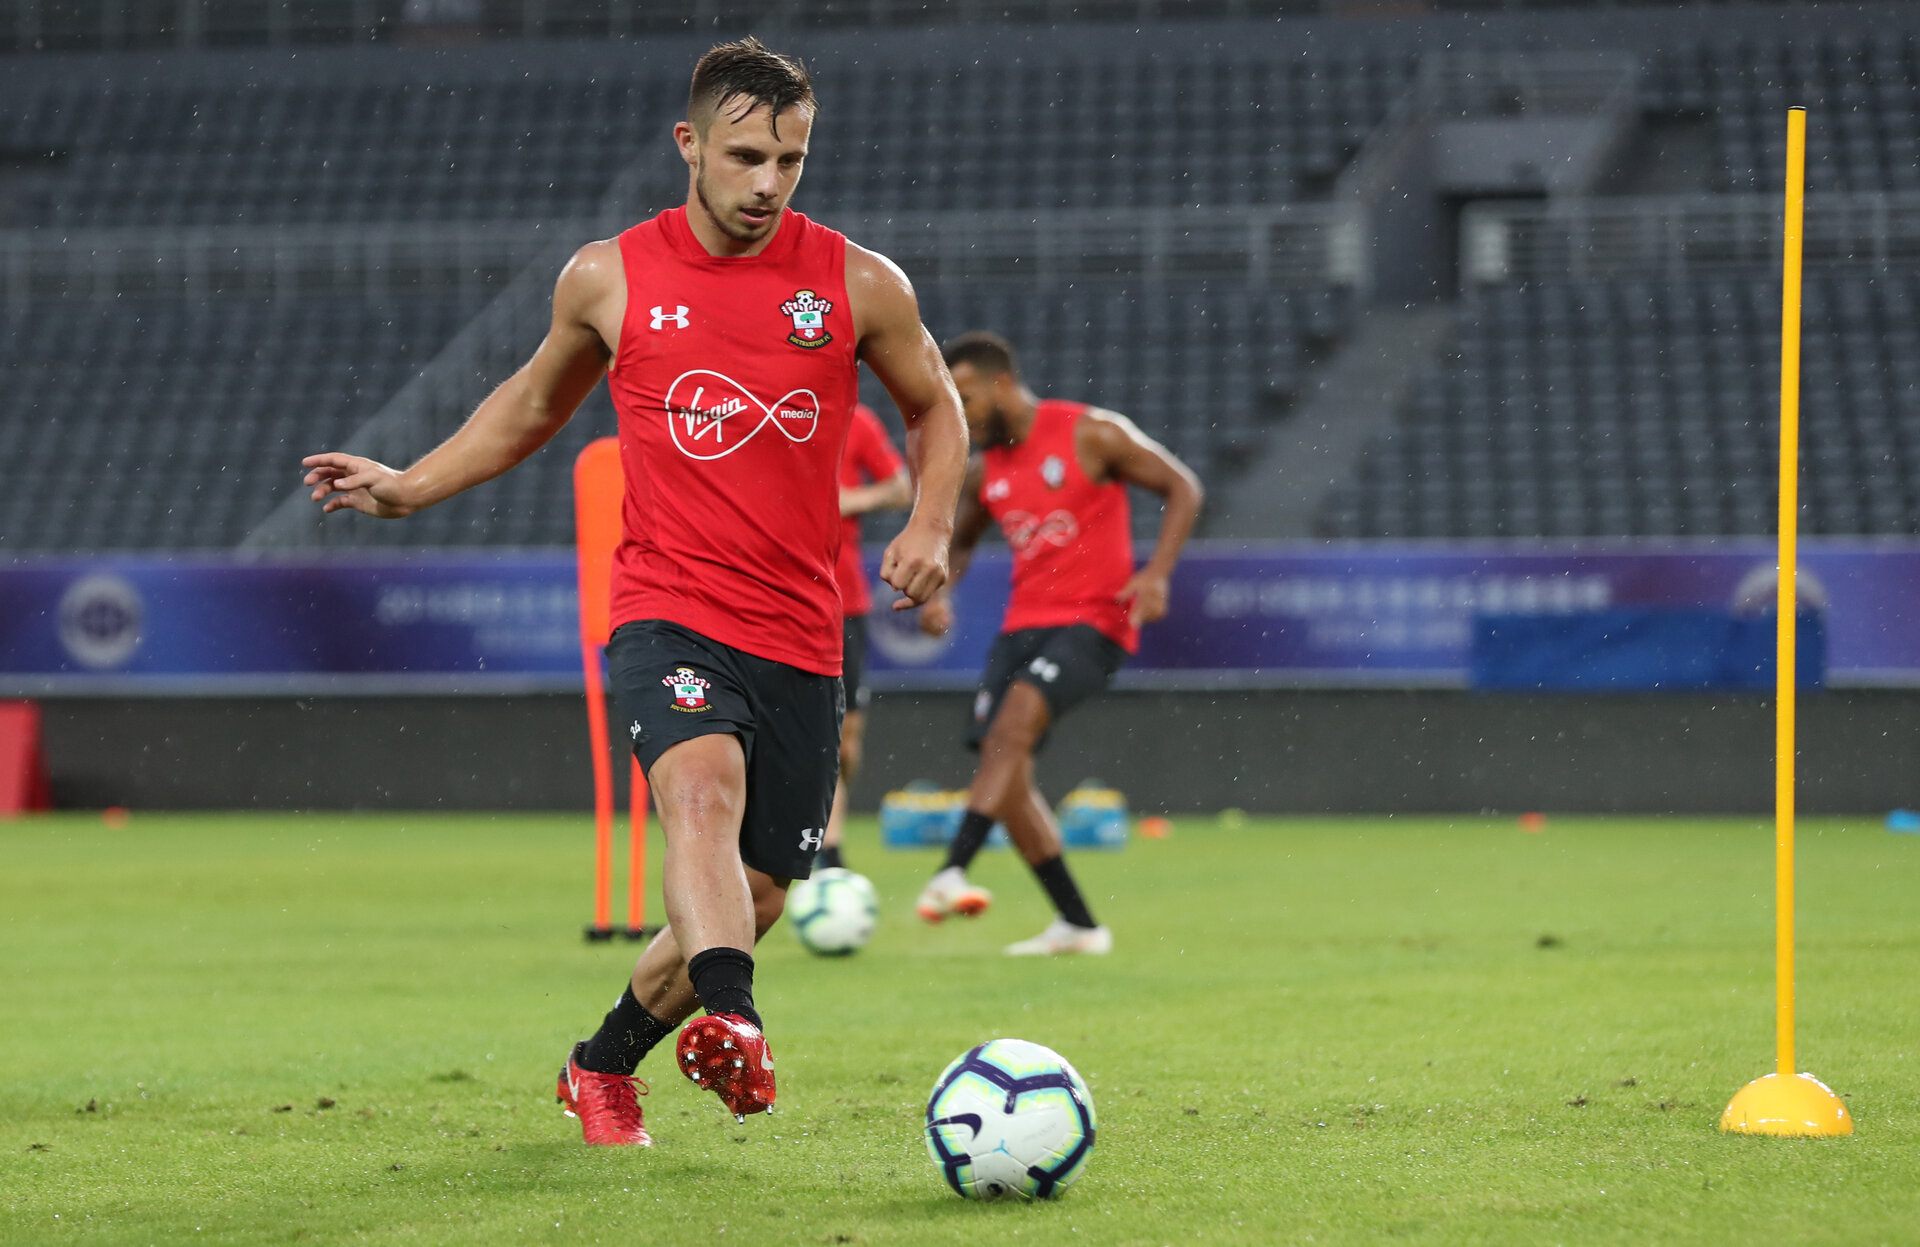 SHANGHAI, CHINA - JULY 09: Jake Flannigan during a Southampton FC training session, while on their pre season tour of China, on July 9, 2018 in Xuzhou, China. (Photo by Matt Watson/Southampton FC via Getty Images)